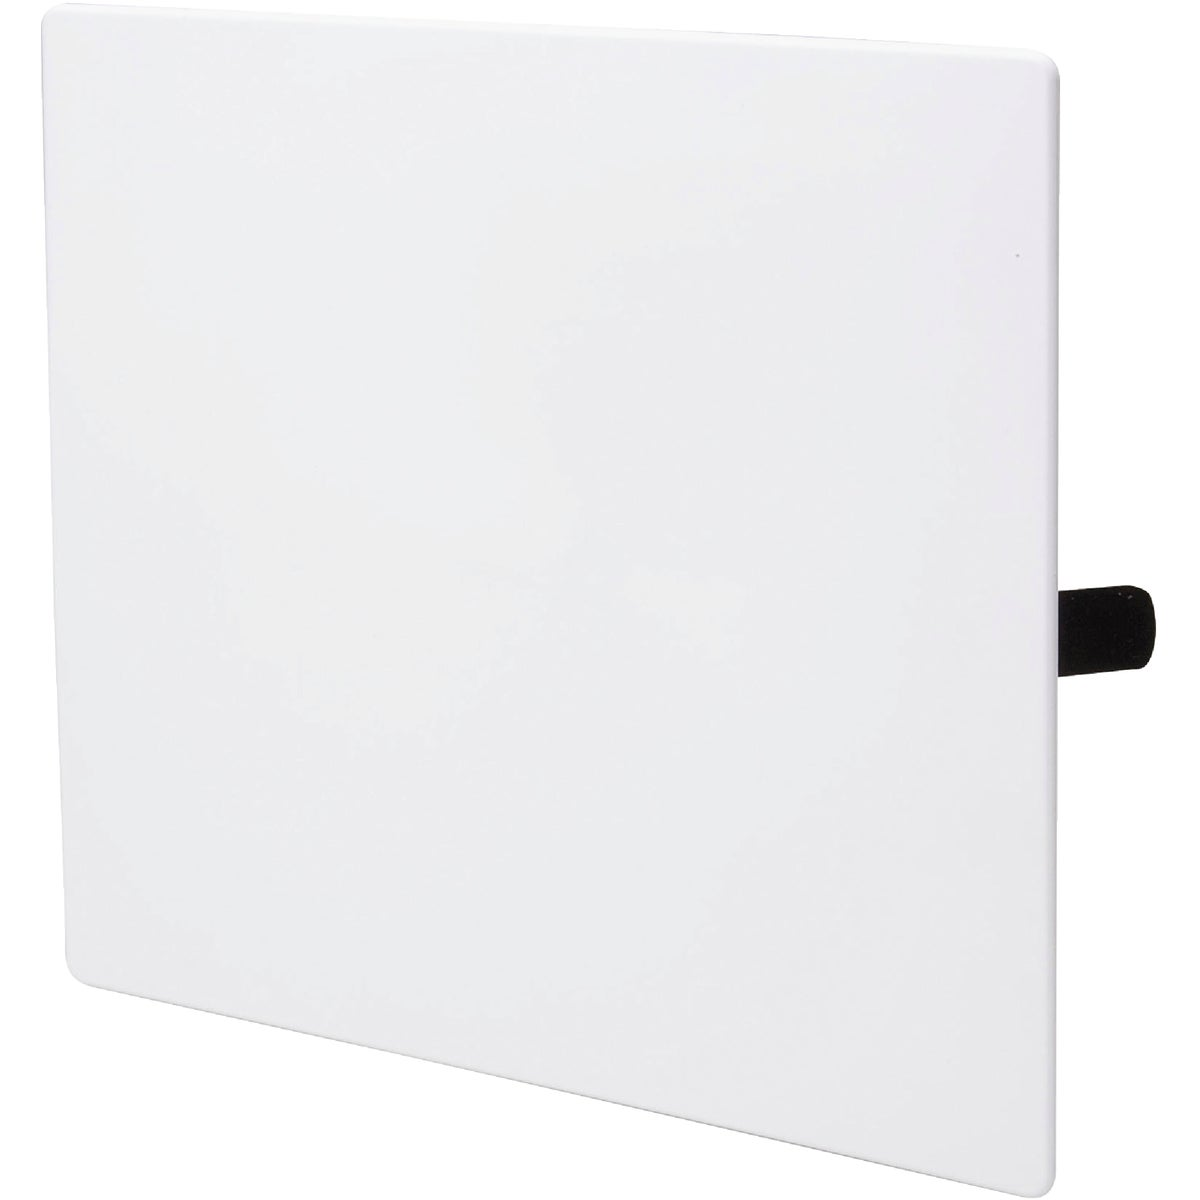 "10"" SQ ACCESS PANEL - 156-708 by Mueller B K"